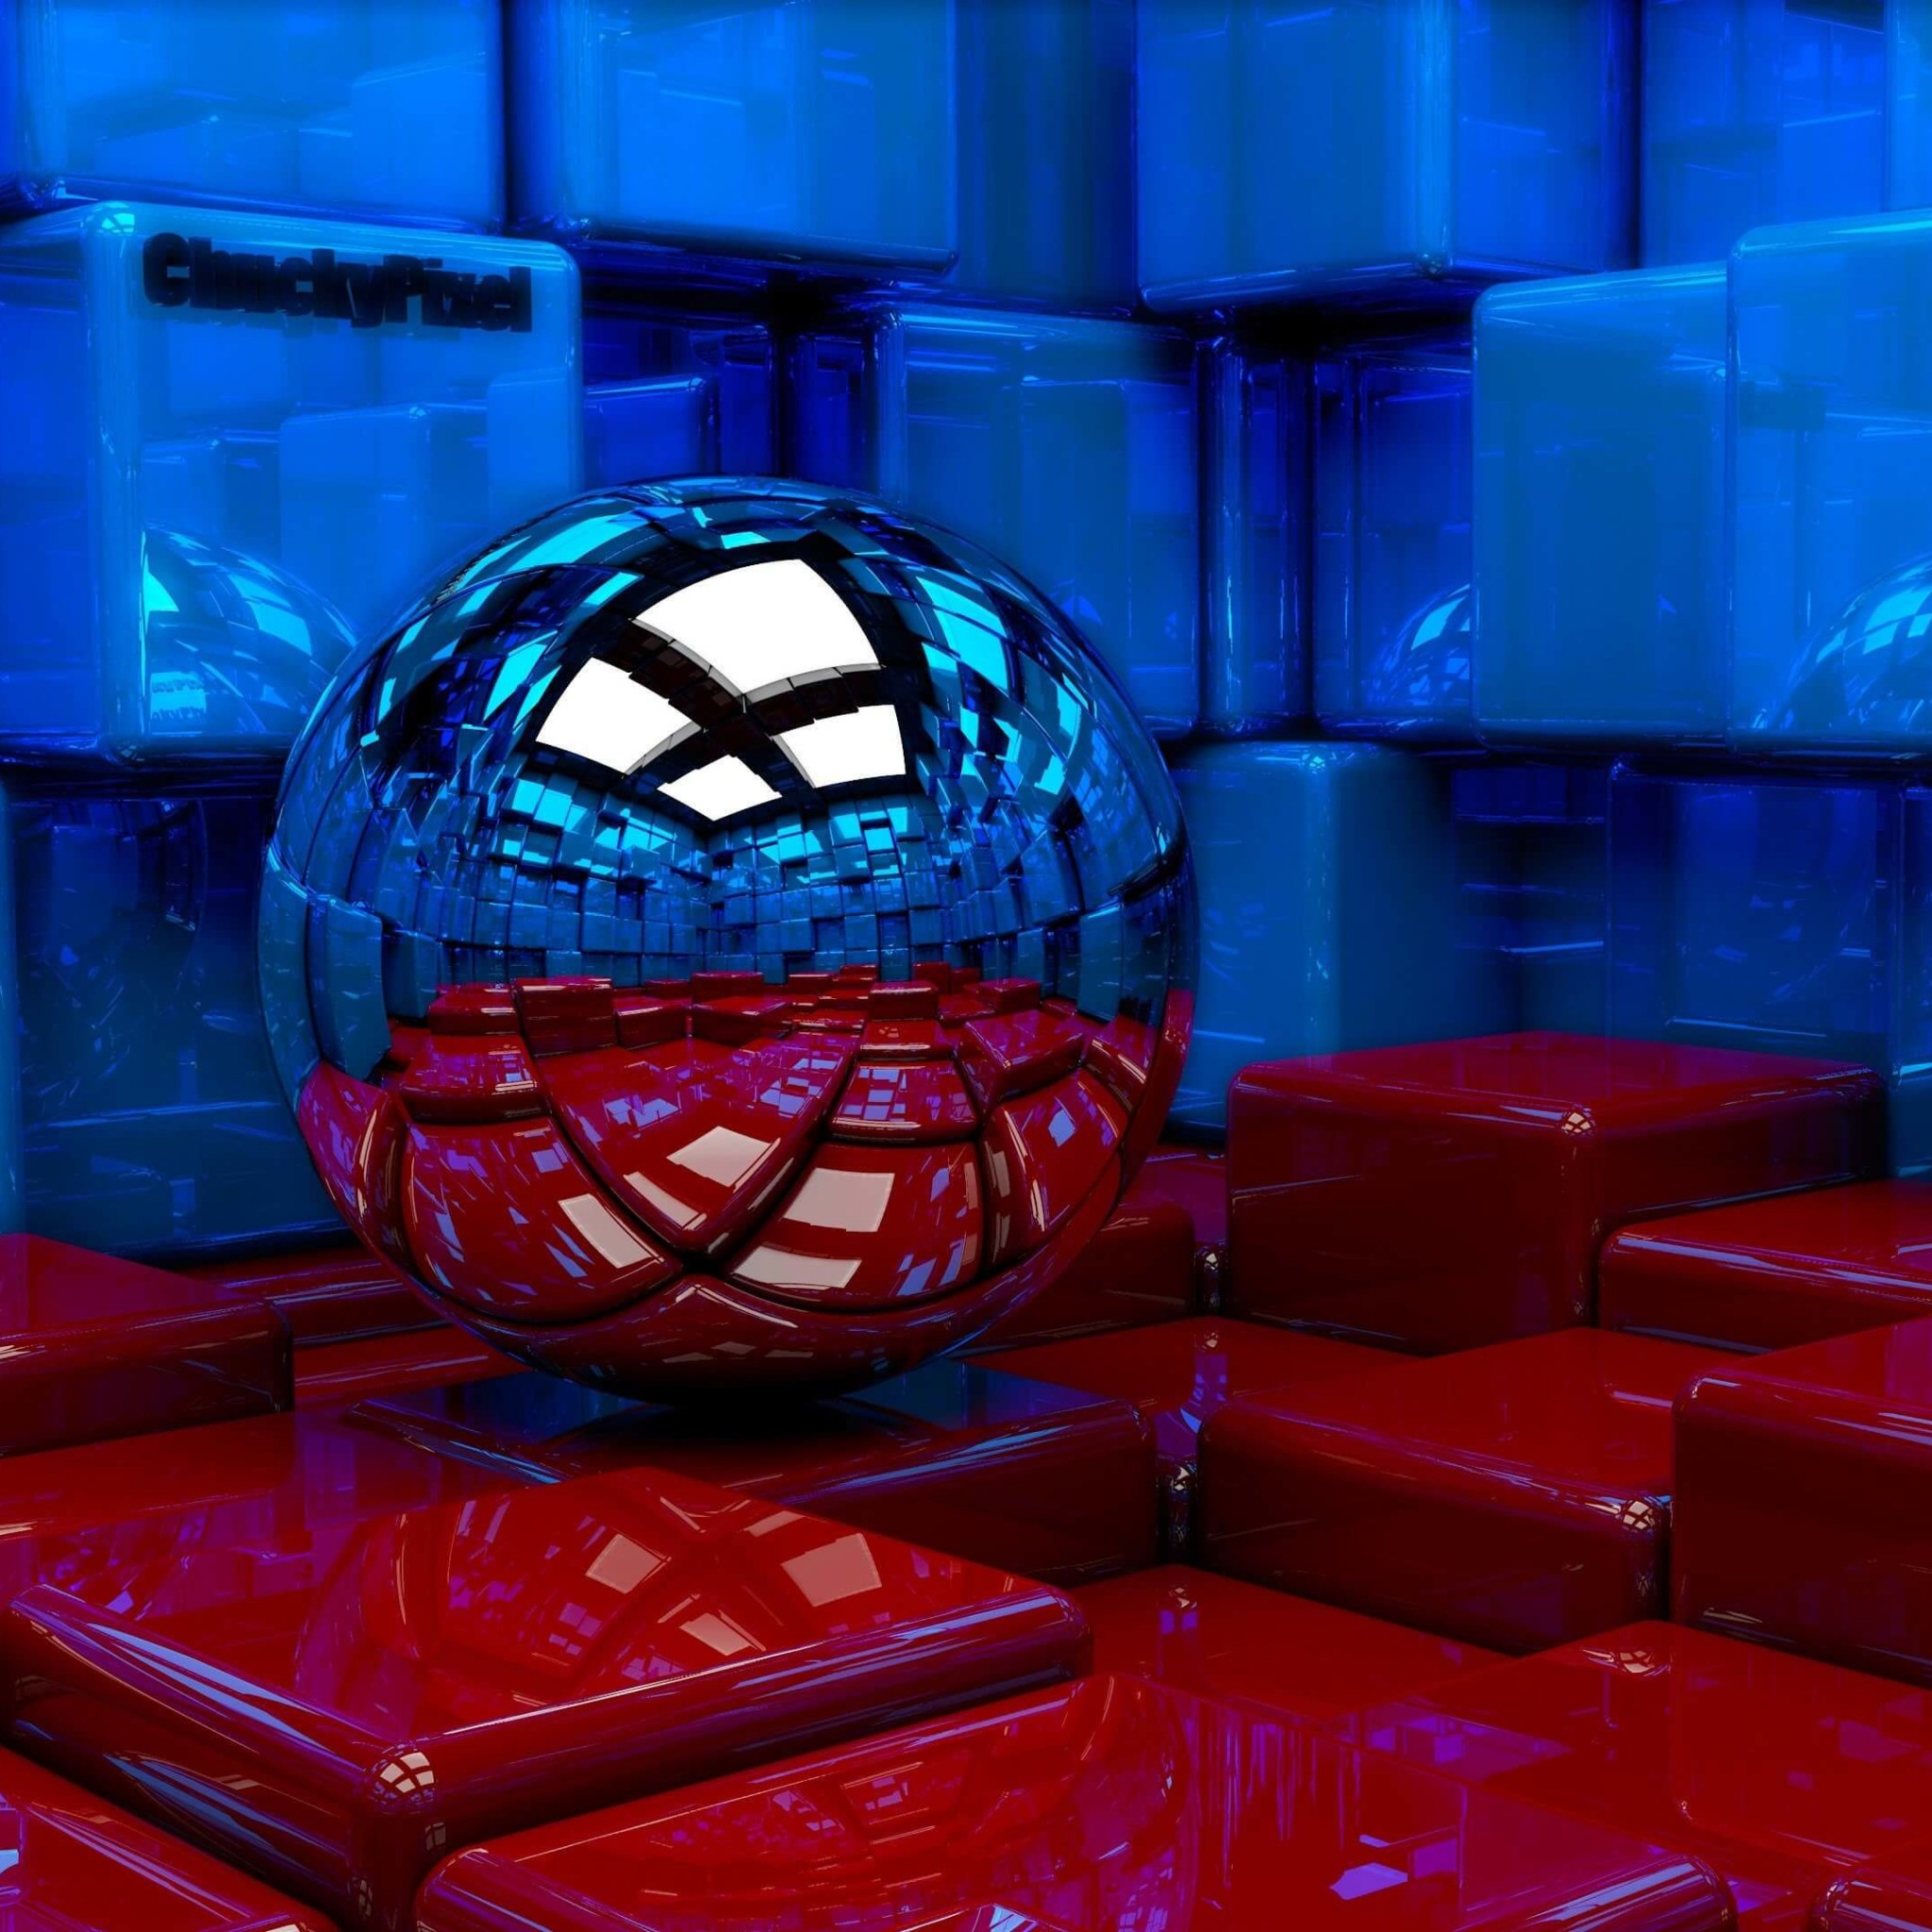 Metallic Sphere Reflecting The Cube Room Wallpaper for Google Nexus 9